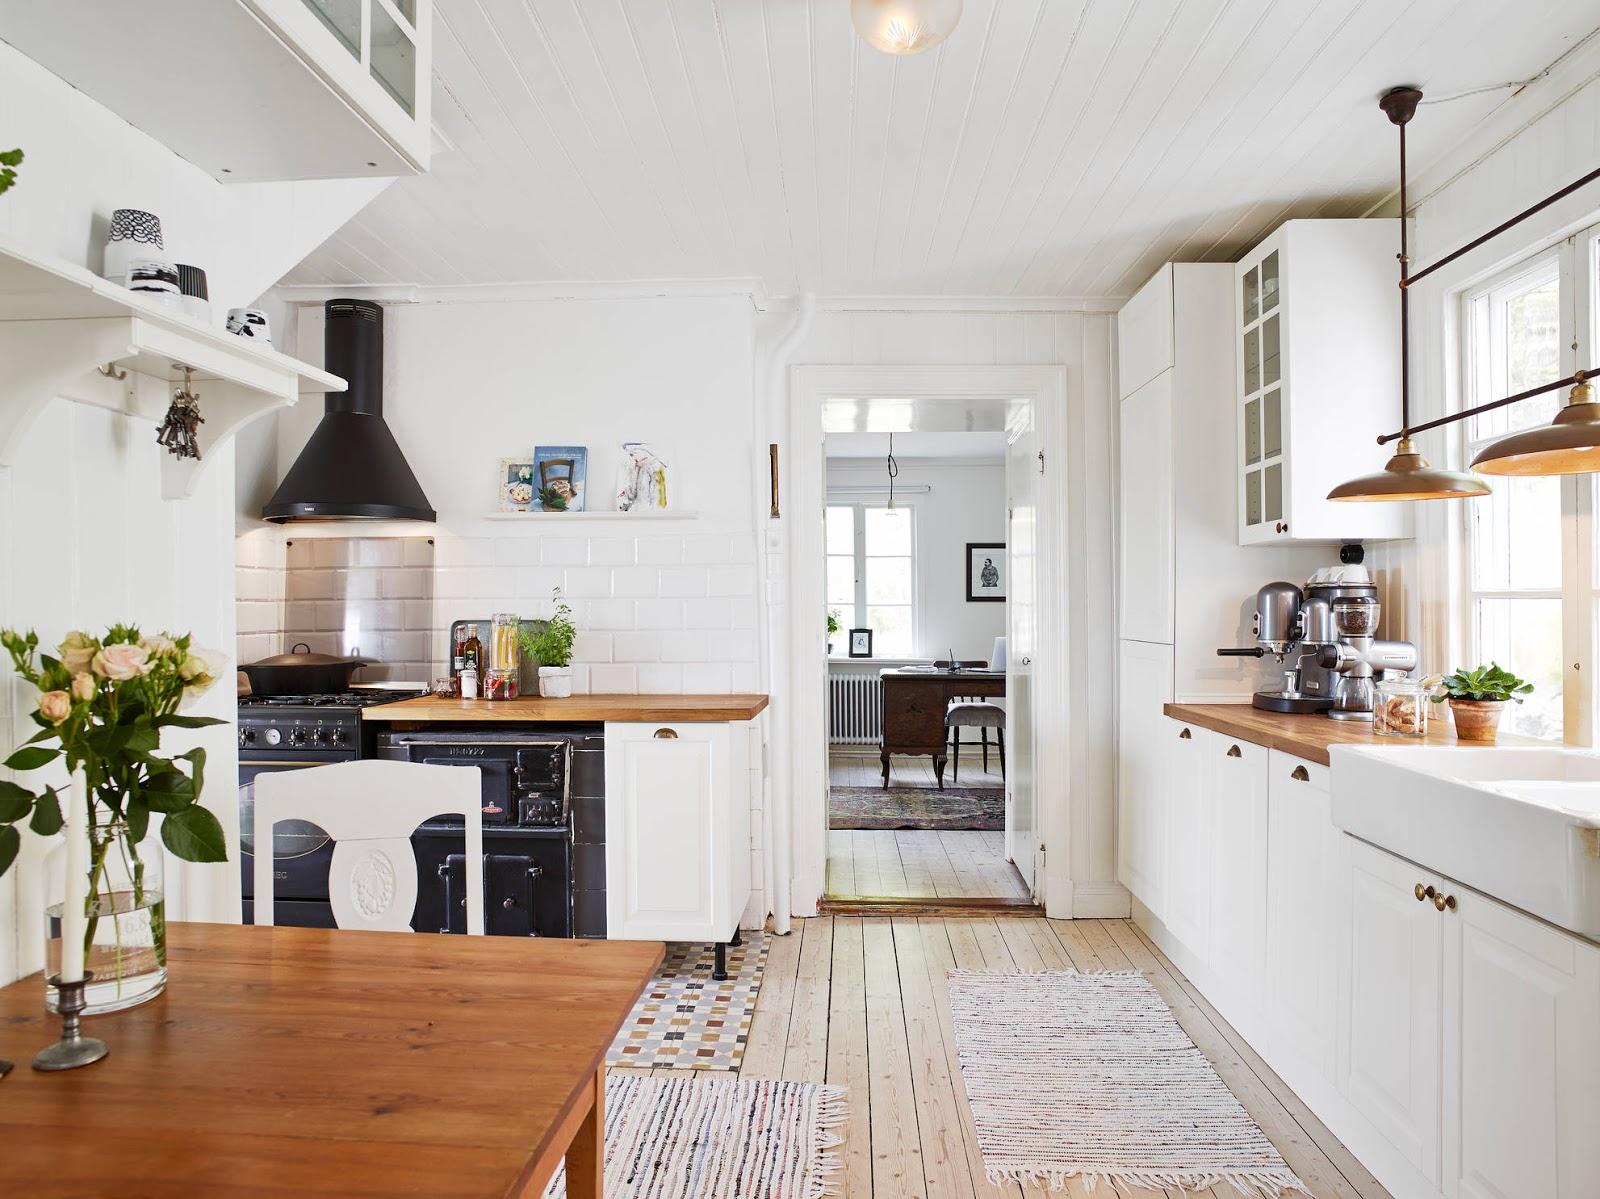 Interiors scandinavian style house cool chic style fashion for Scandinavian design house